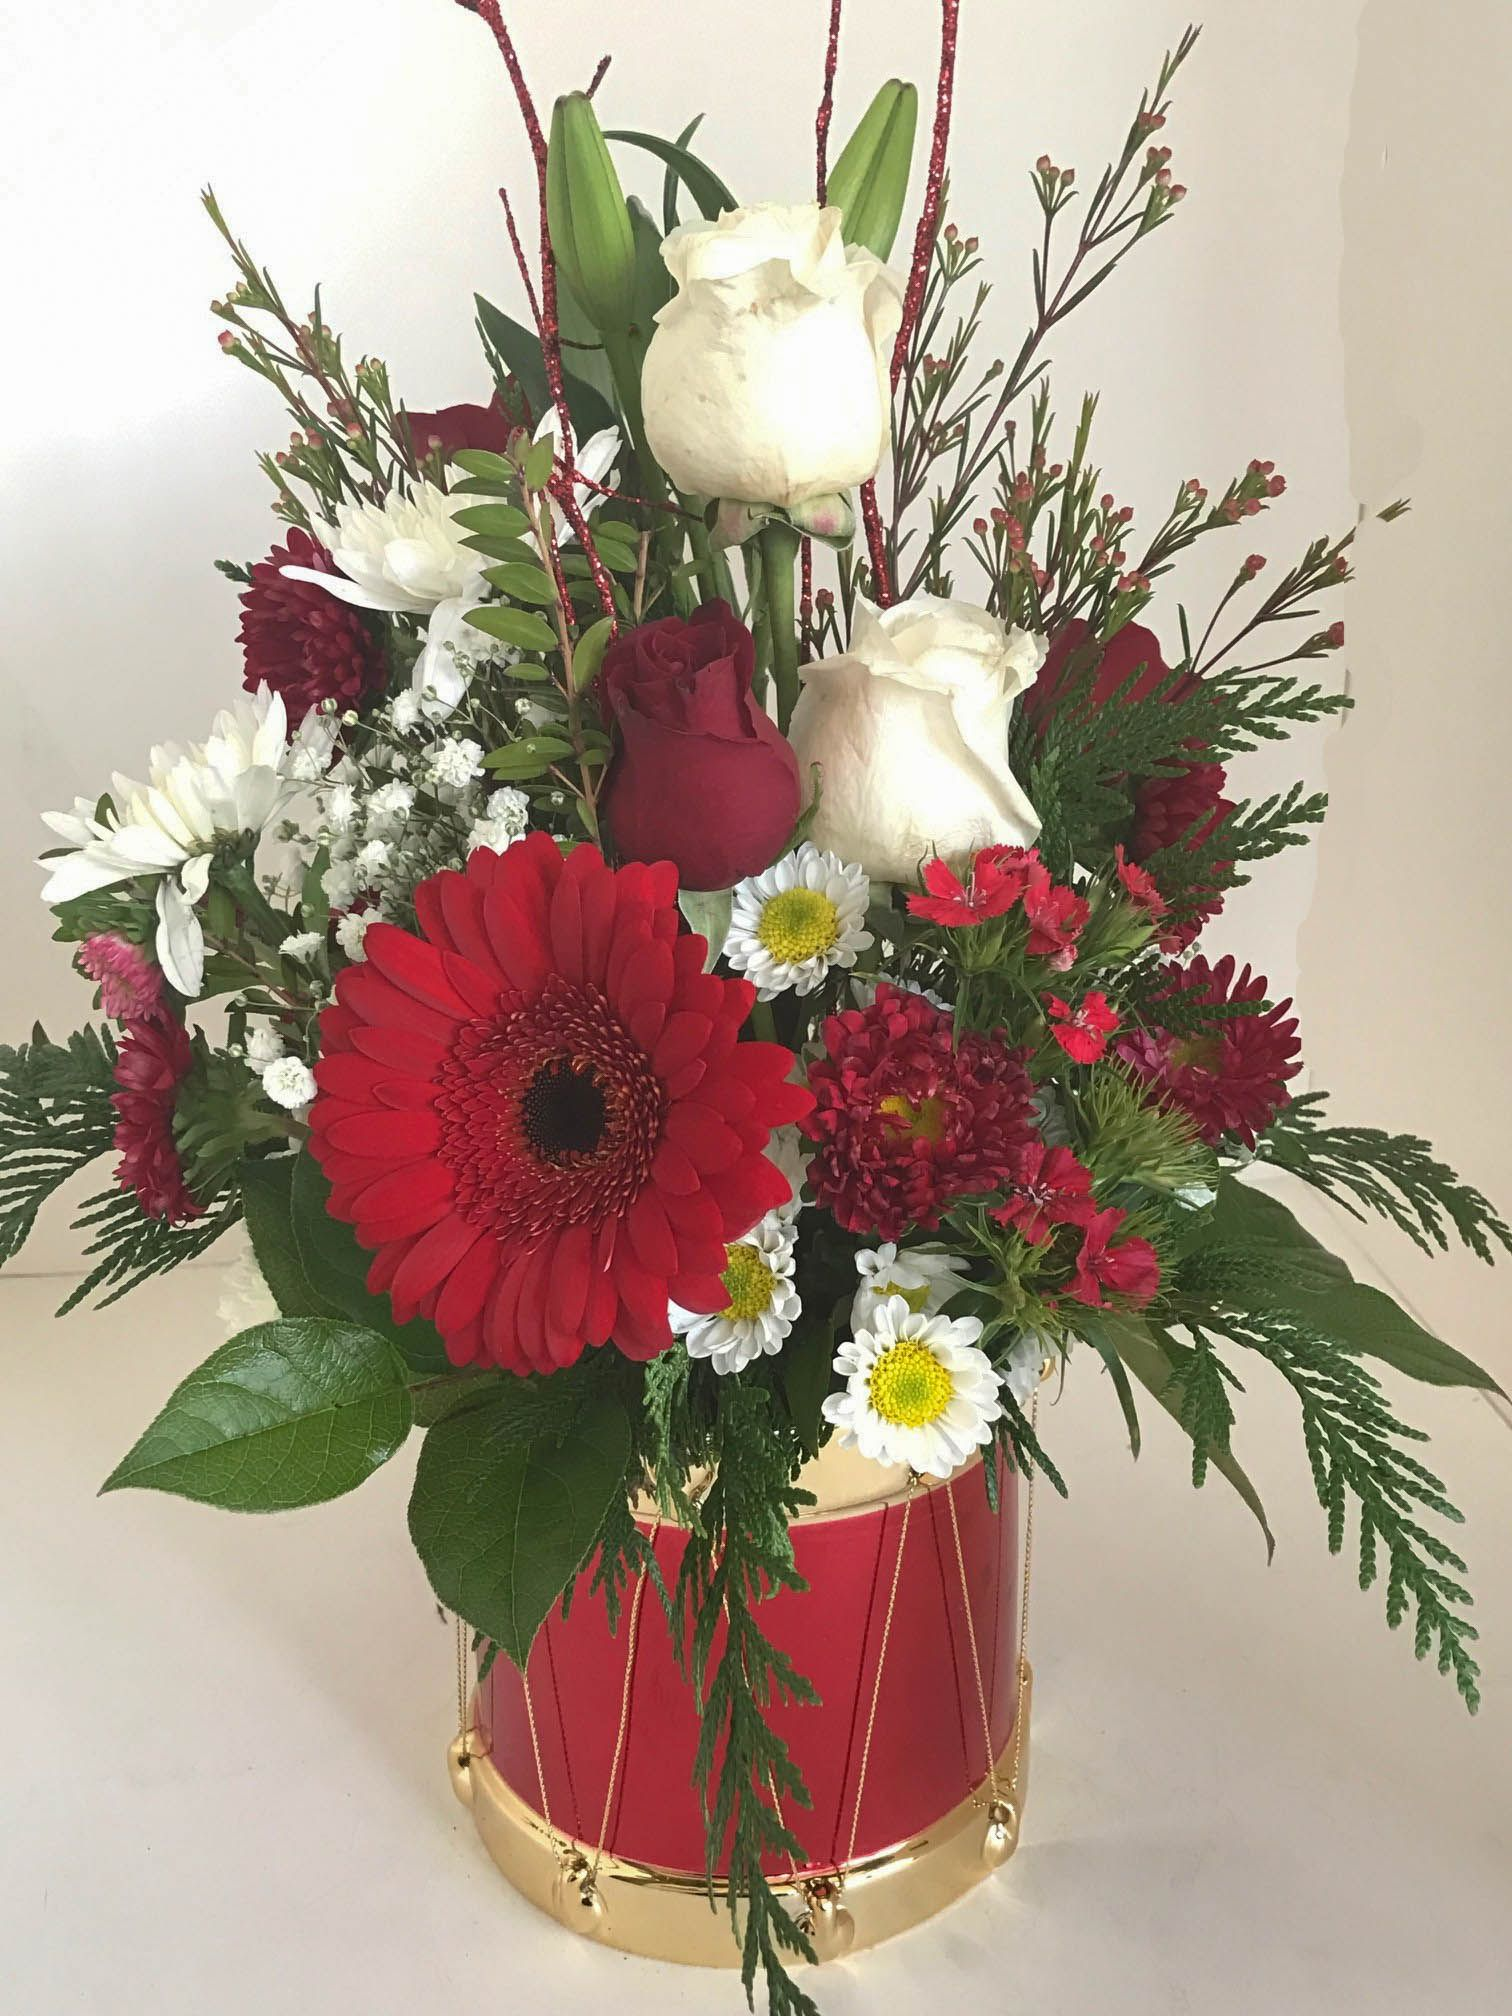 Drum Filled With White And Red Roses Gerberas Other Flowers And